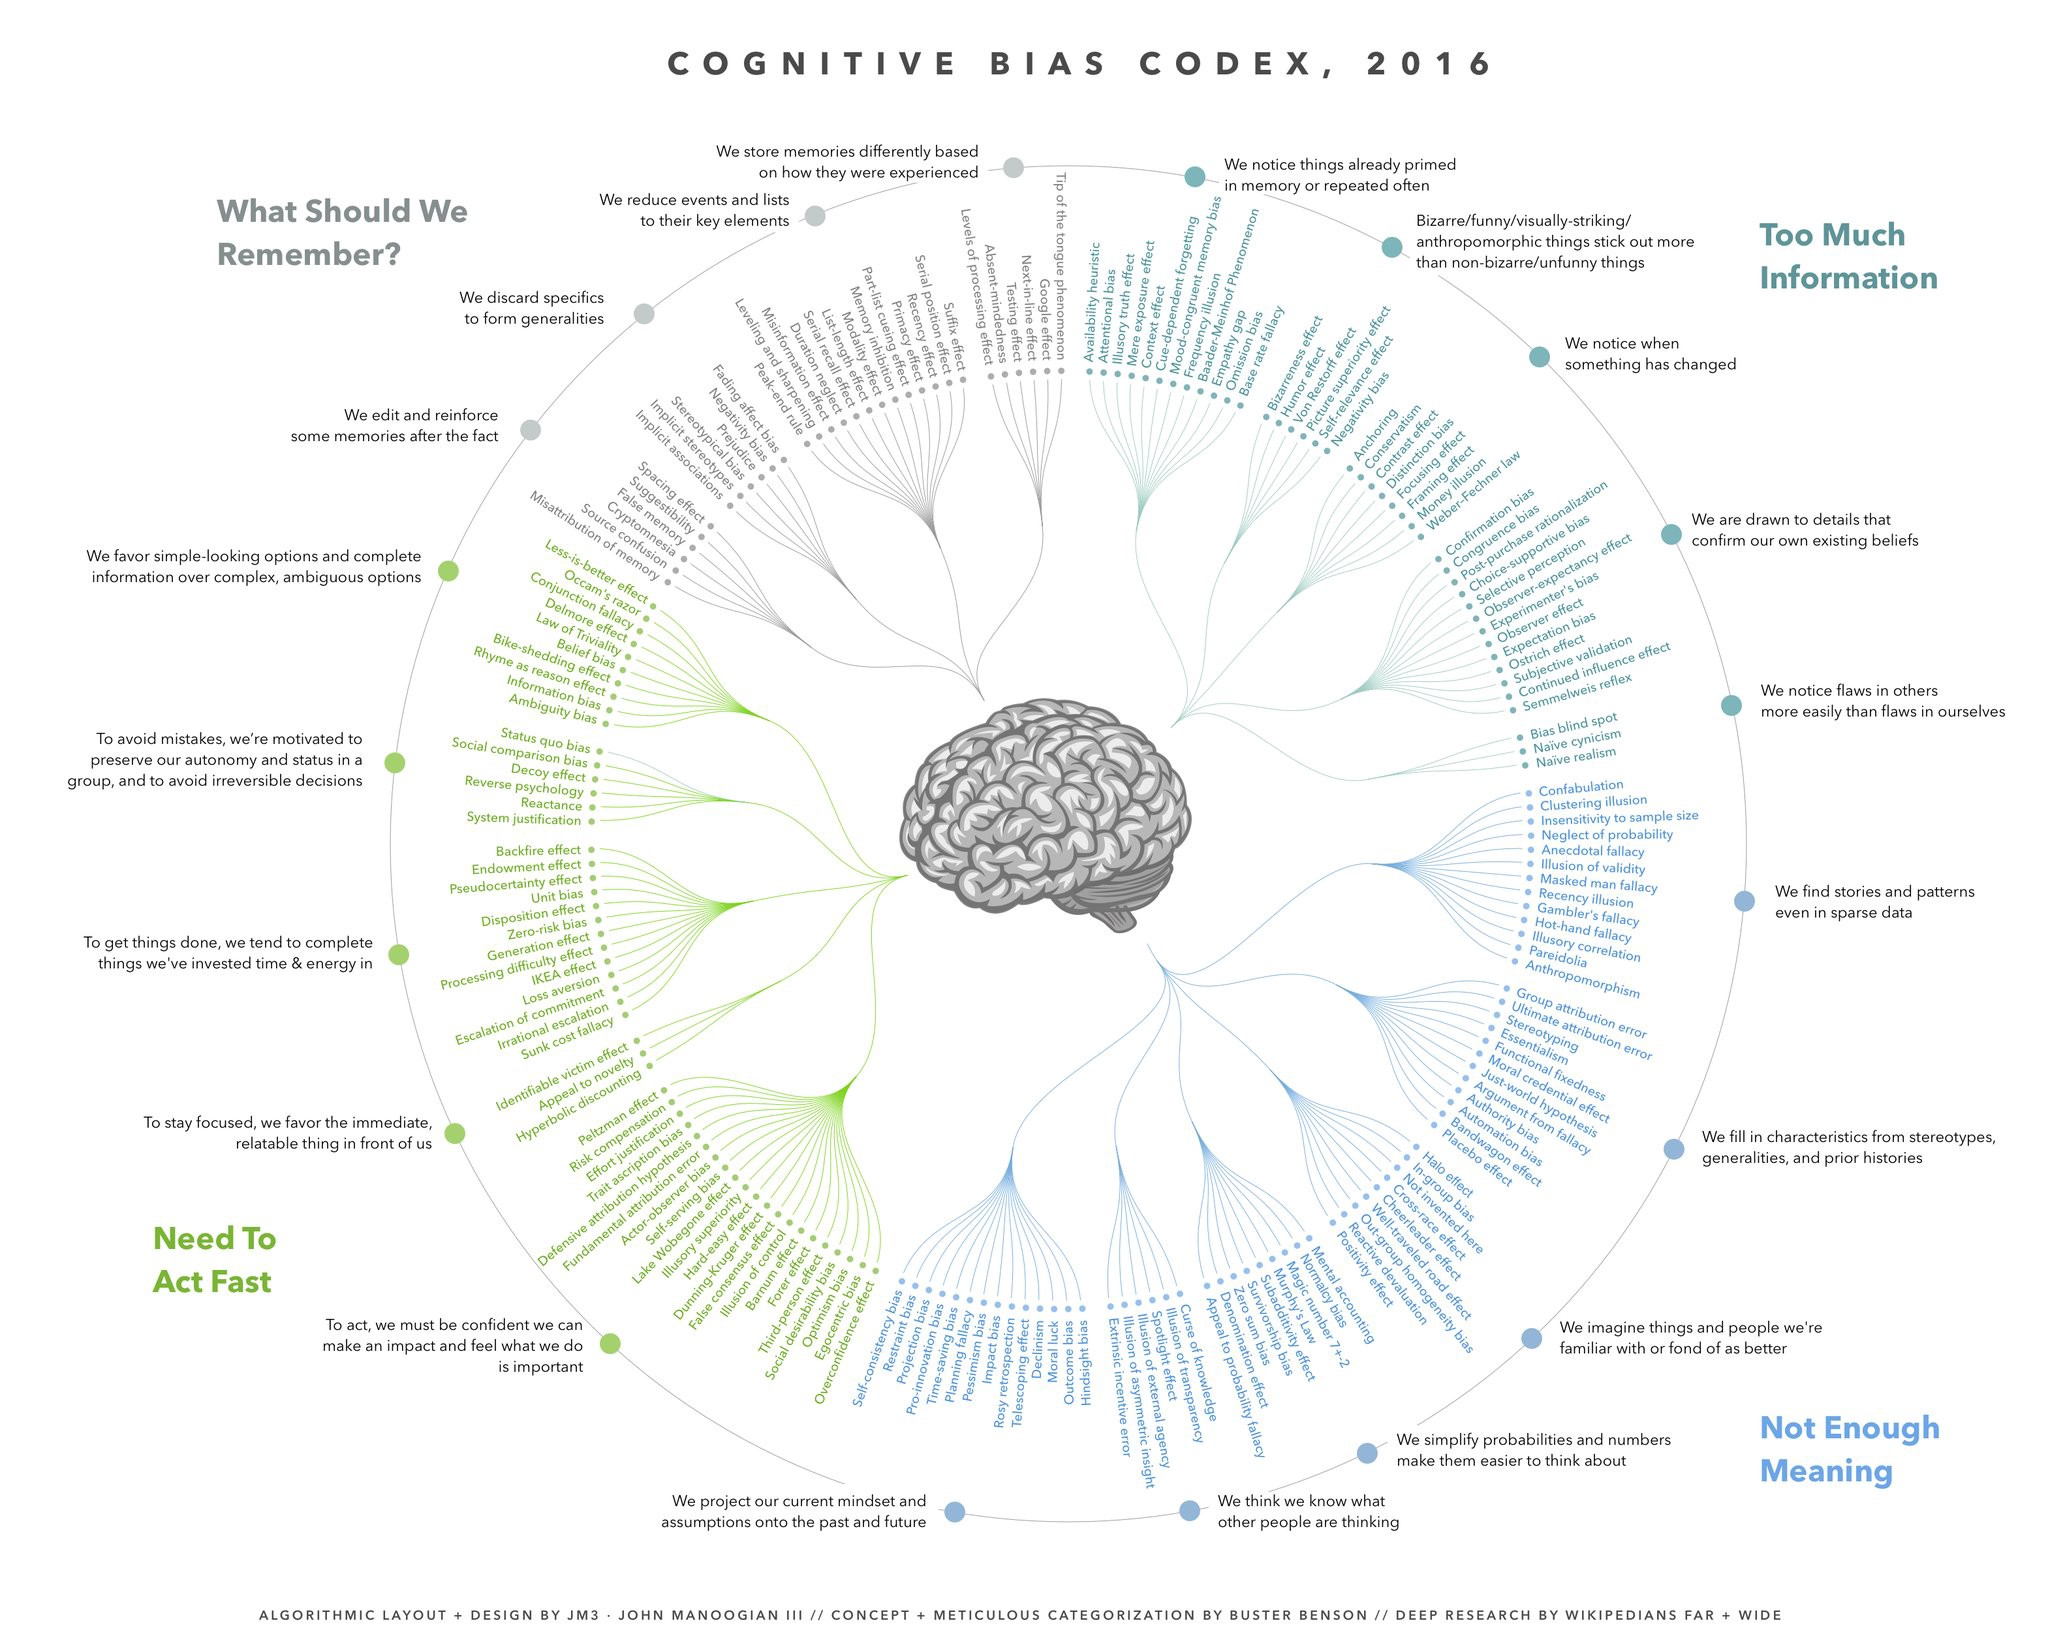 Cognitive Bias Codex  by Buster Benson et al